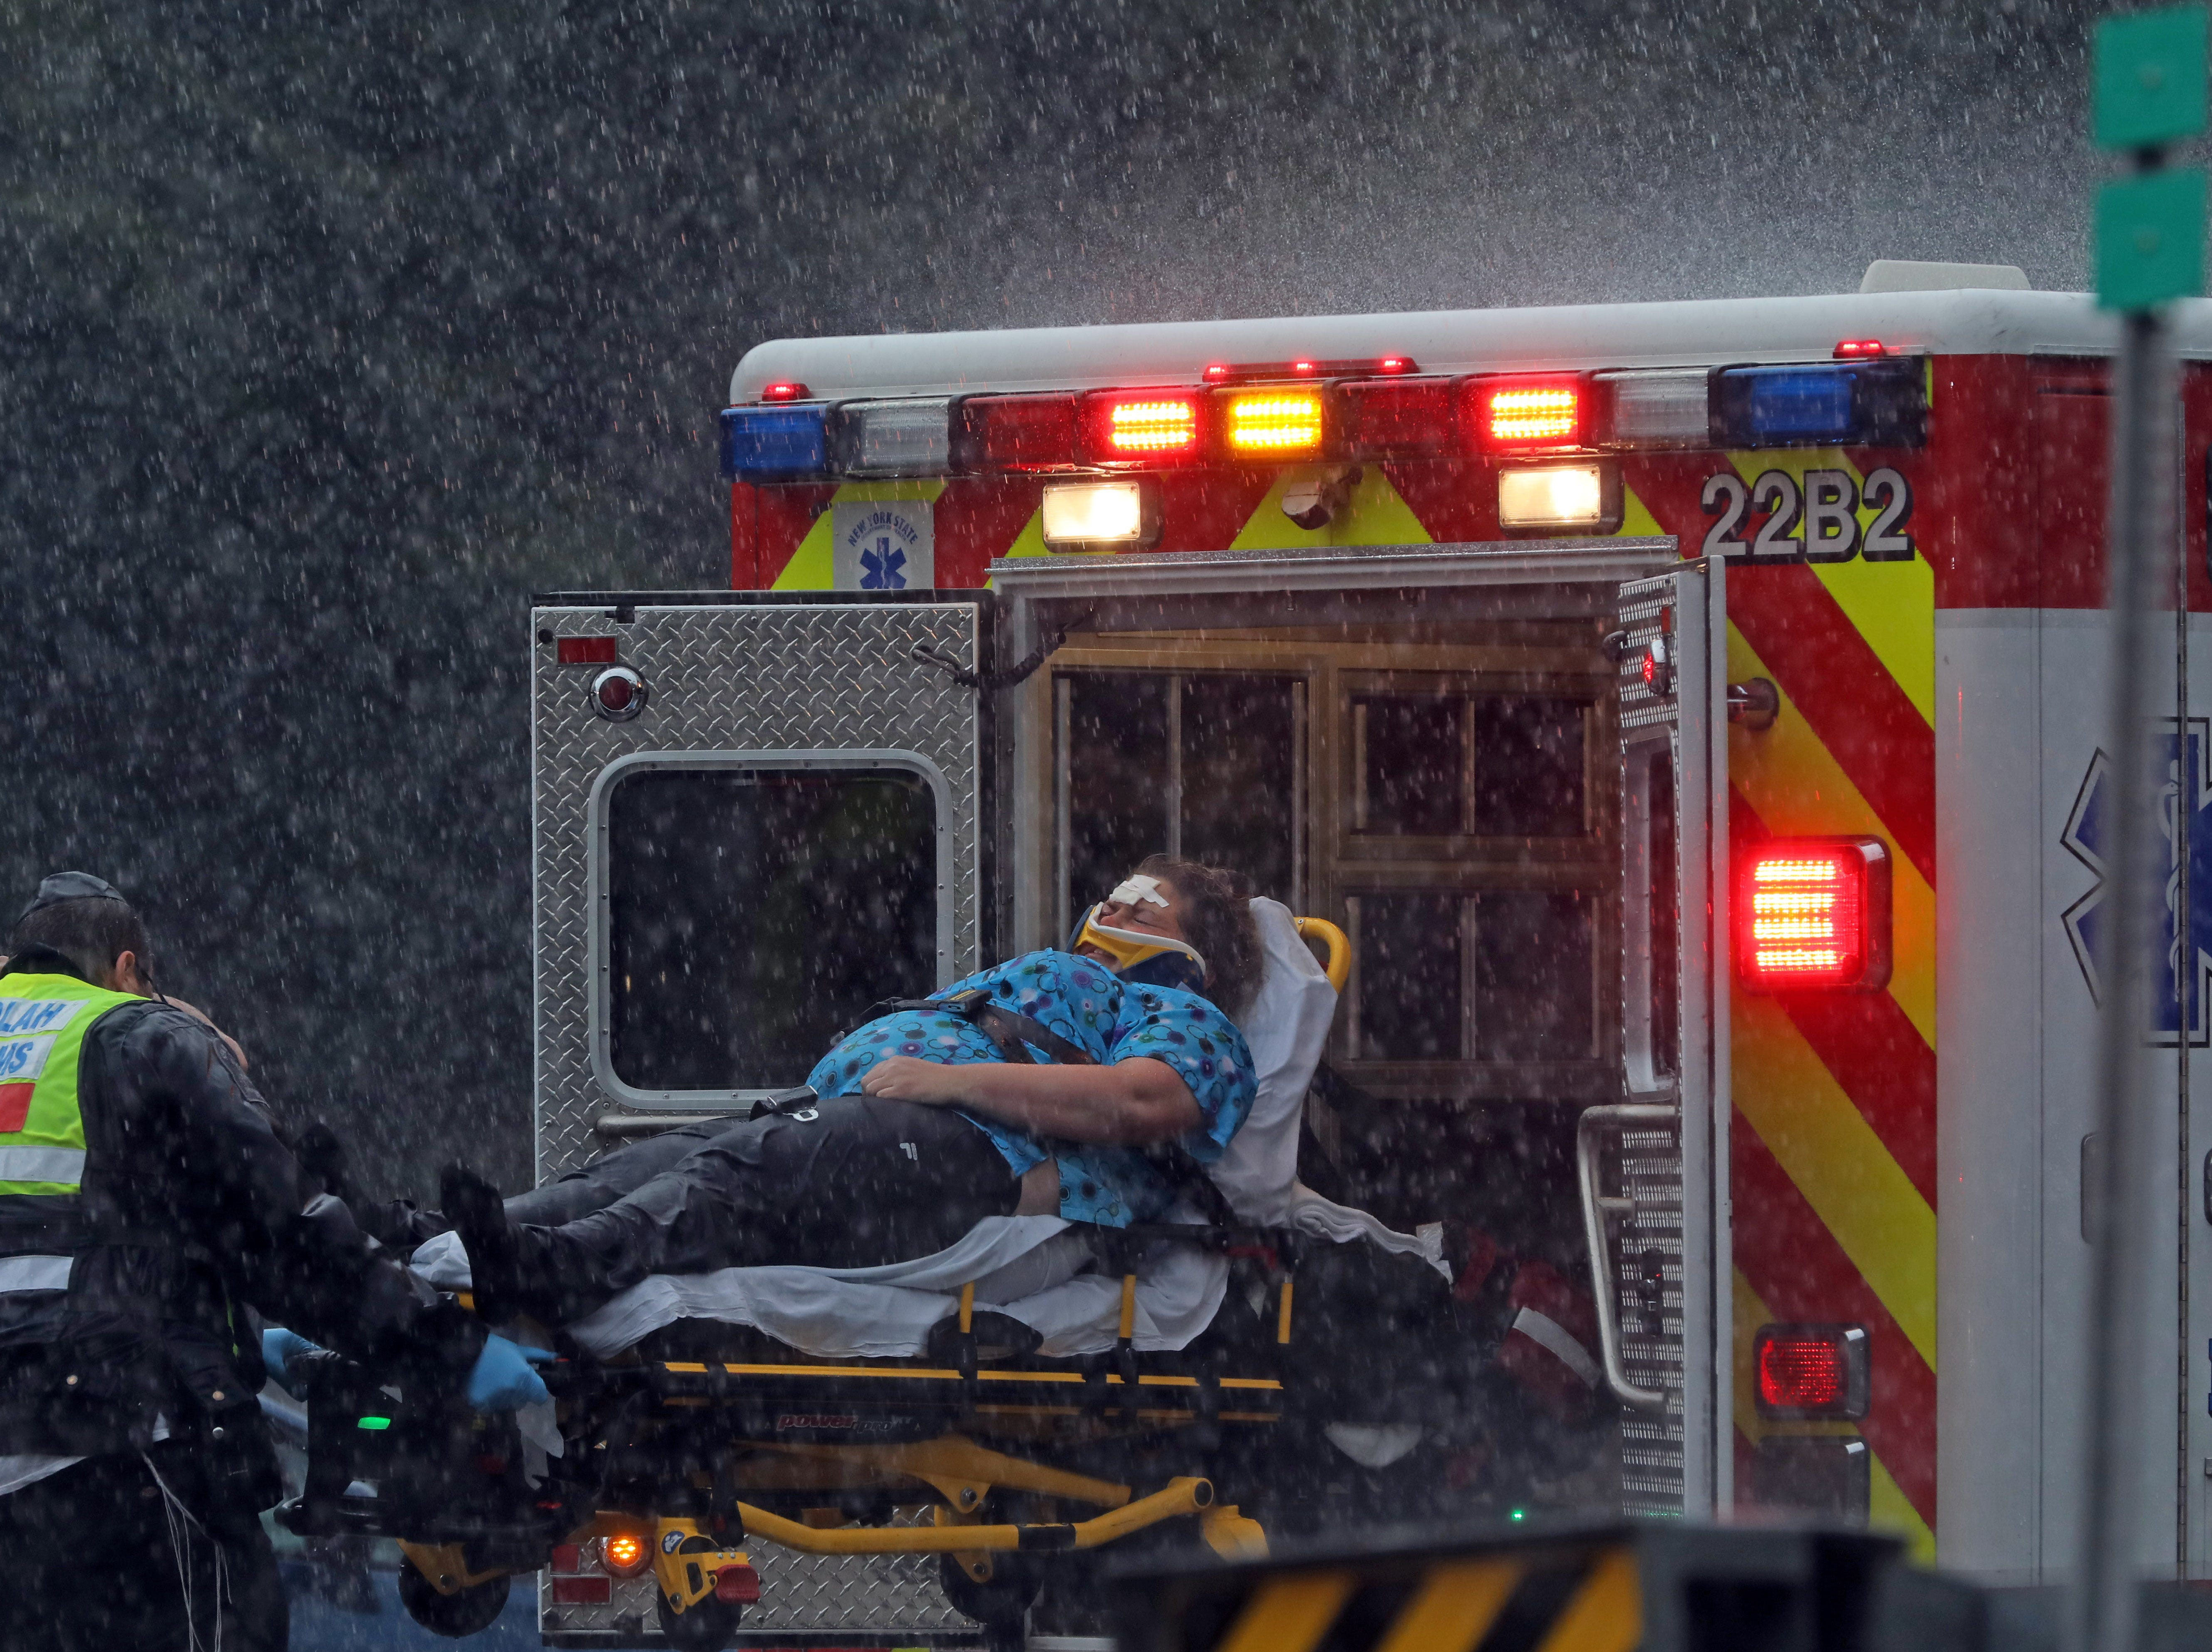 A woman in a red car is help by the paramedic after being in a two car accident on I-87 Southbound in Spring Valley on Thursday Oct. 11, 2018. Two people were taken by ambulance to the hospital.